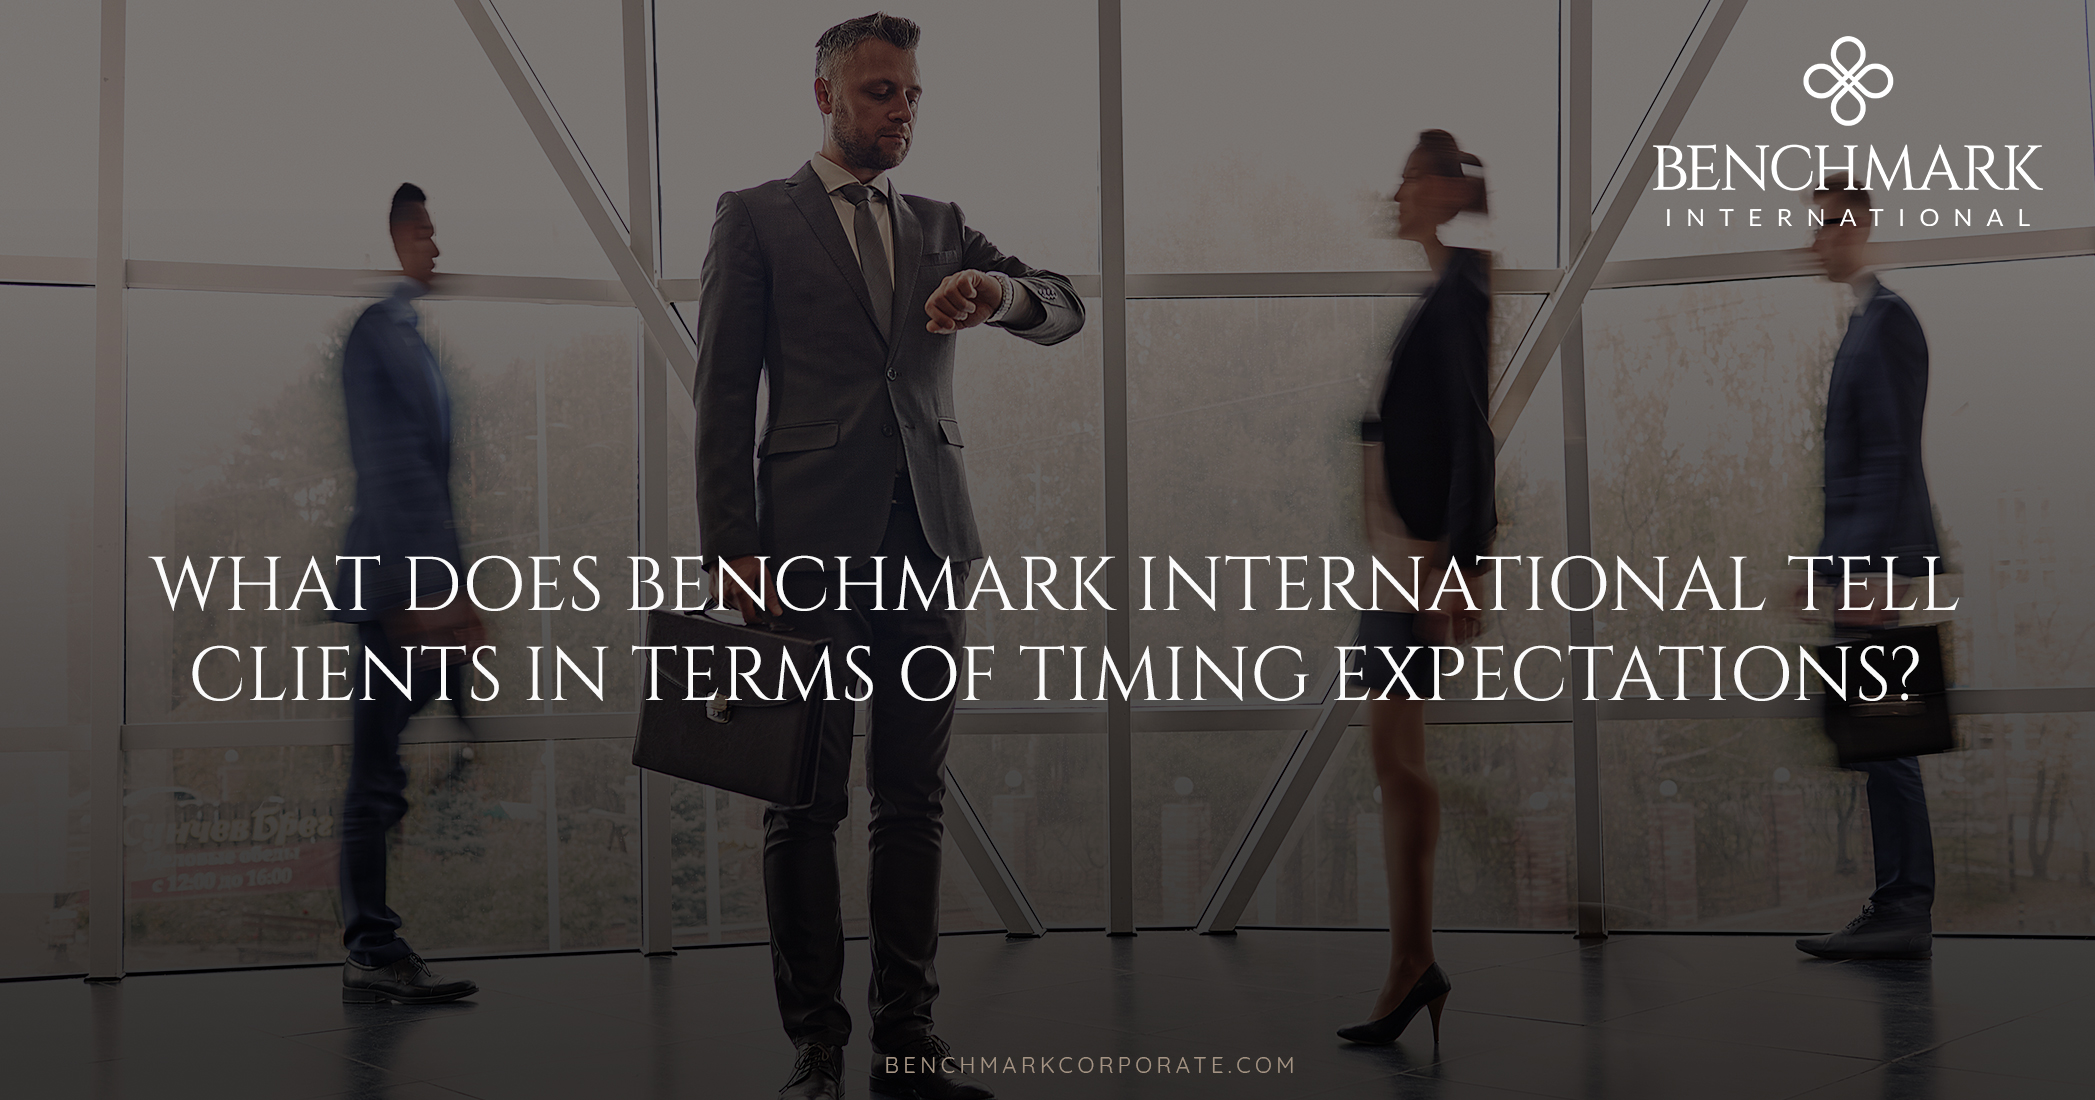 What Does Benchmark International Tell Clients in Terms of Timing Expectations?